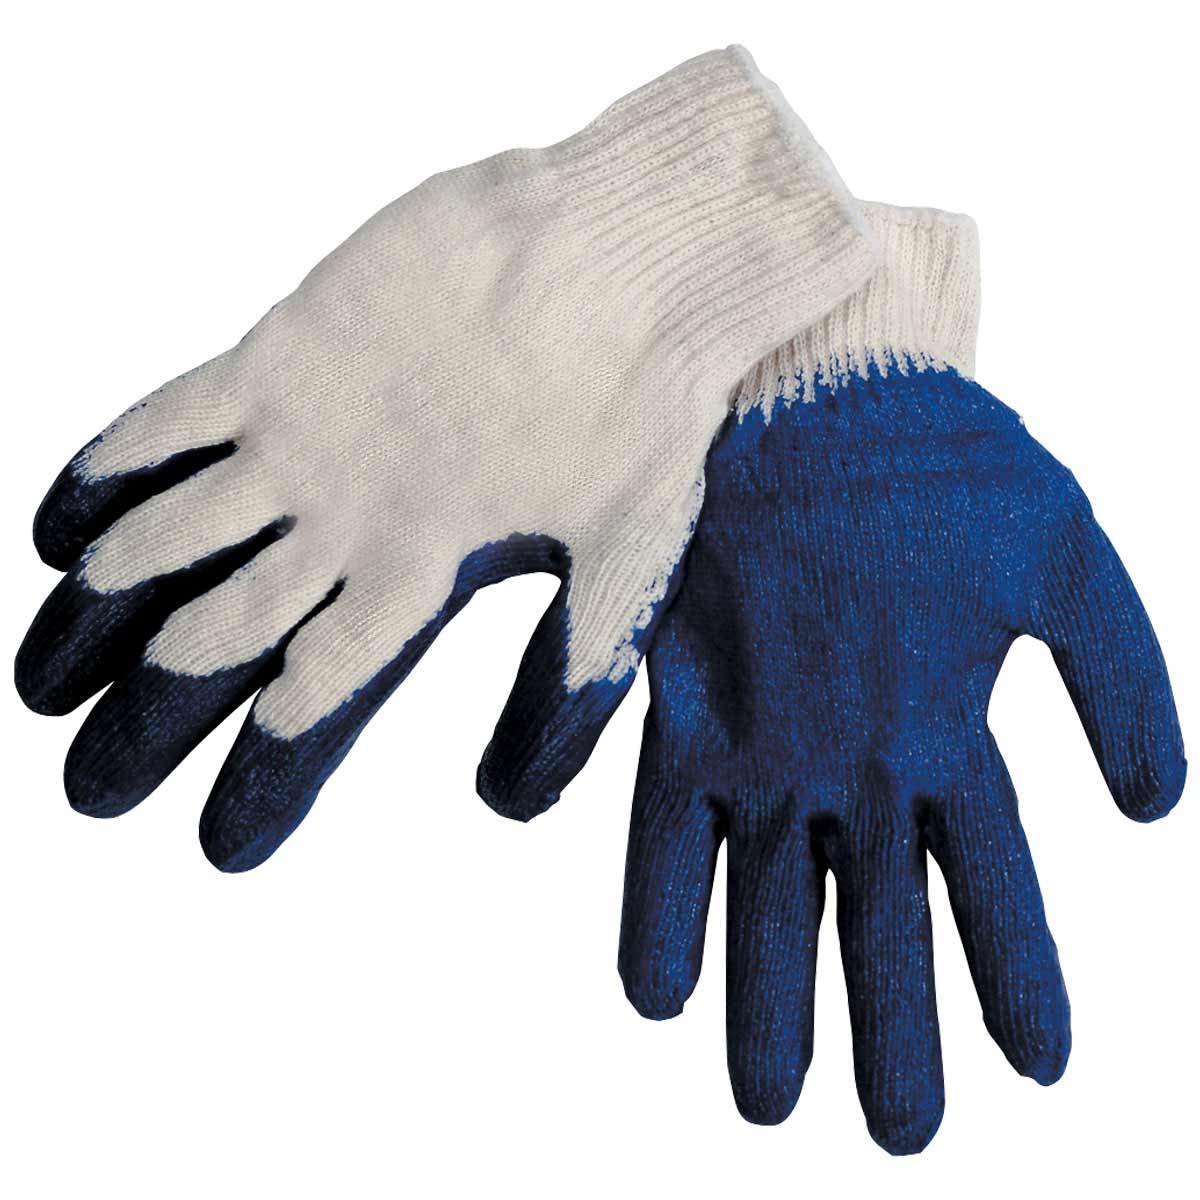 ECONOMYLATEX COATED - COTTON/POLY STRING KNIT SYNTHETIC GLOVES. Pack 12. Large. 2300EEL